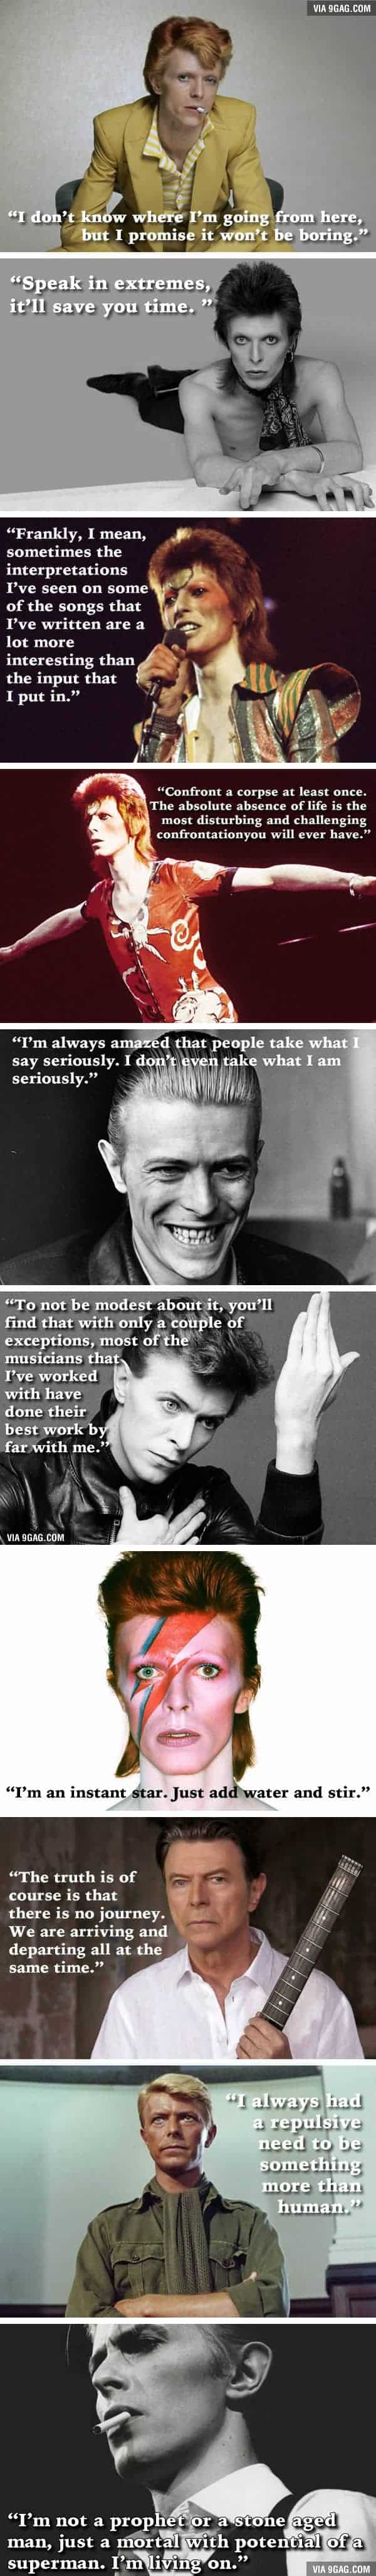 david-bowie-quotes